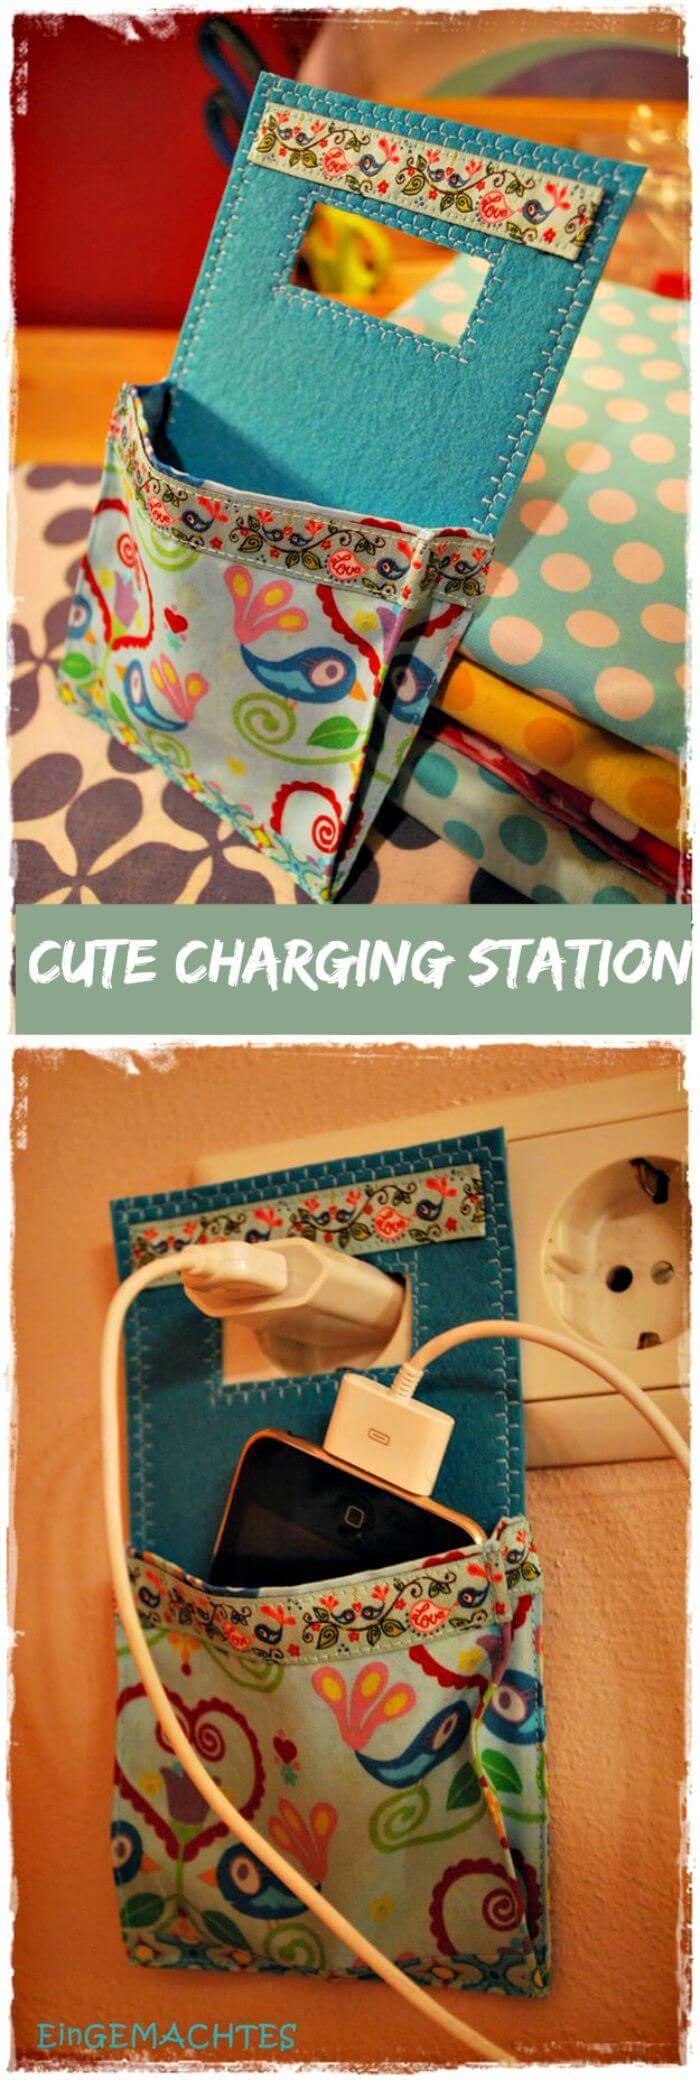 Cute Charging Station